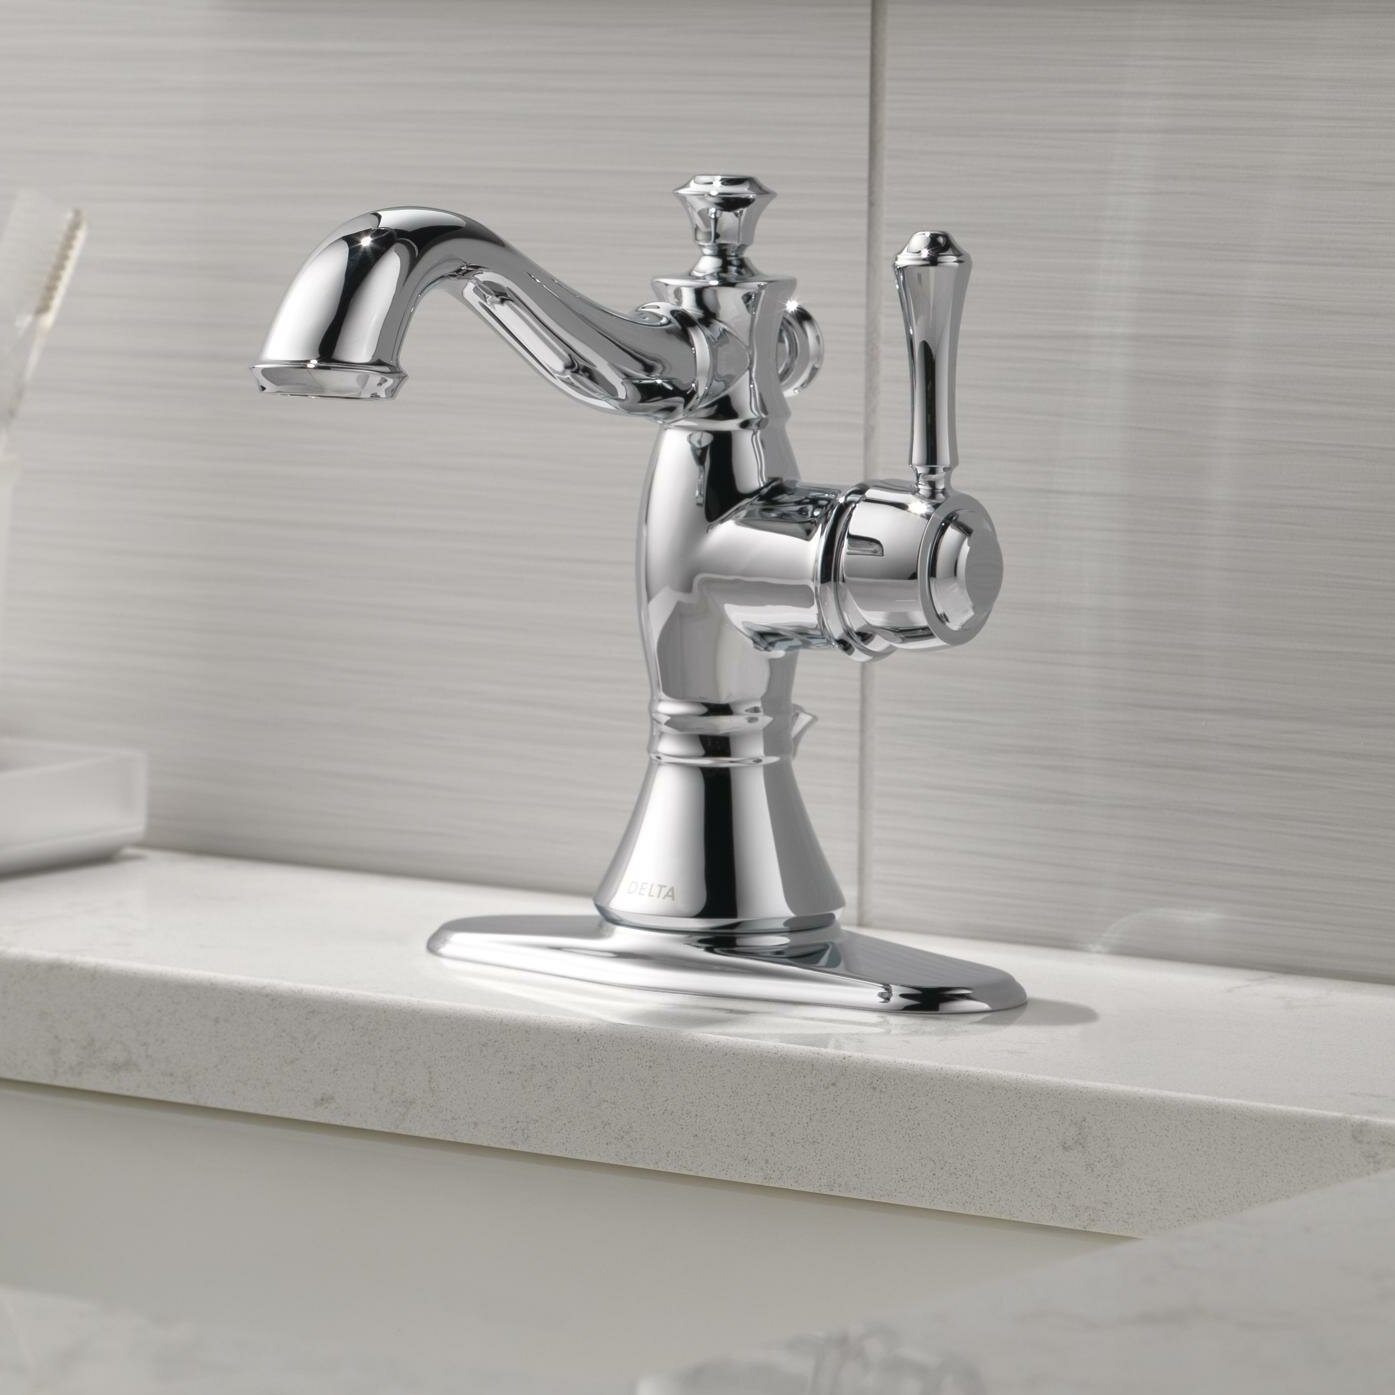 Etonnant Delta Cassidy® Single Hole Bathroom Faucet With Drain Assembly U0026 Reviews |  Wayfair